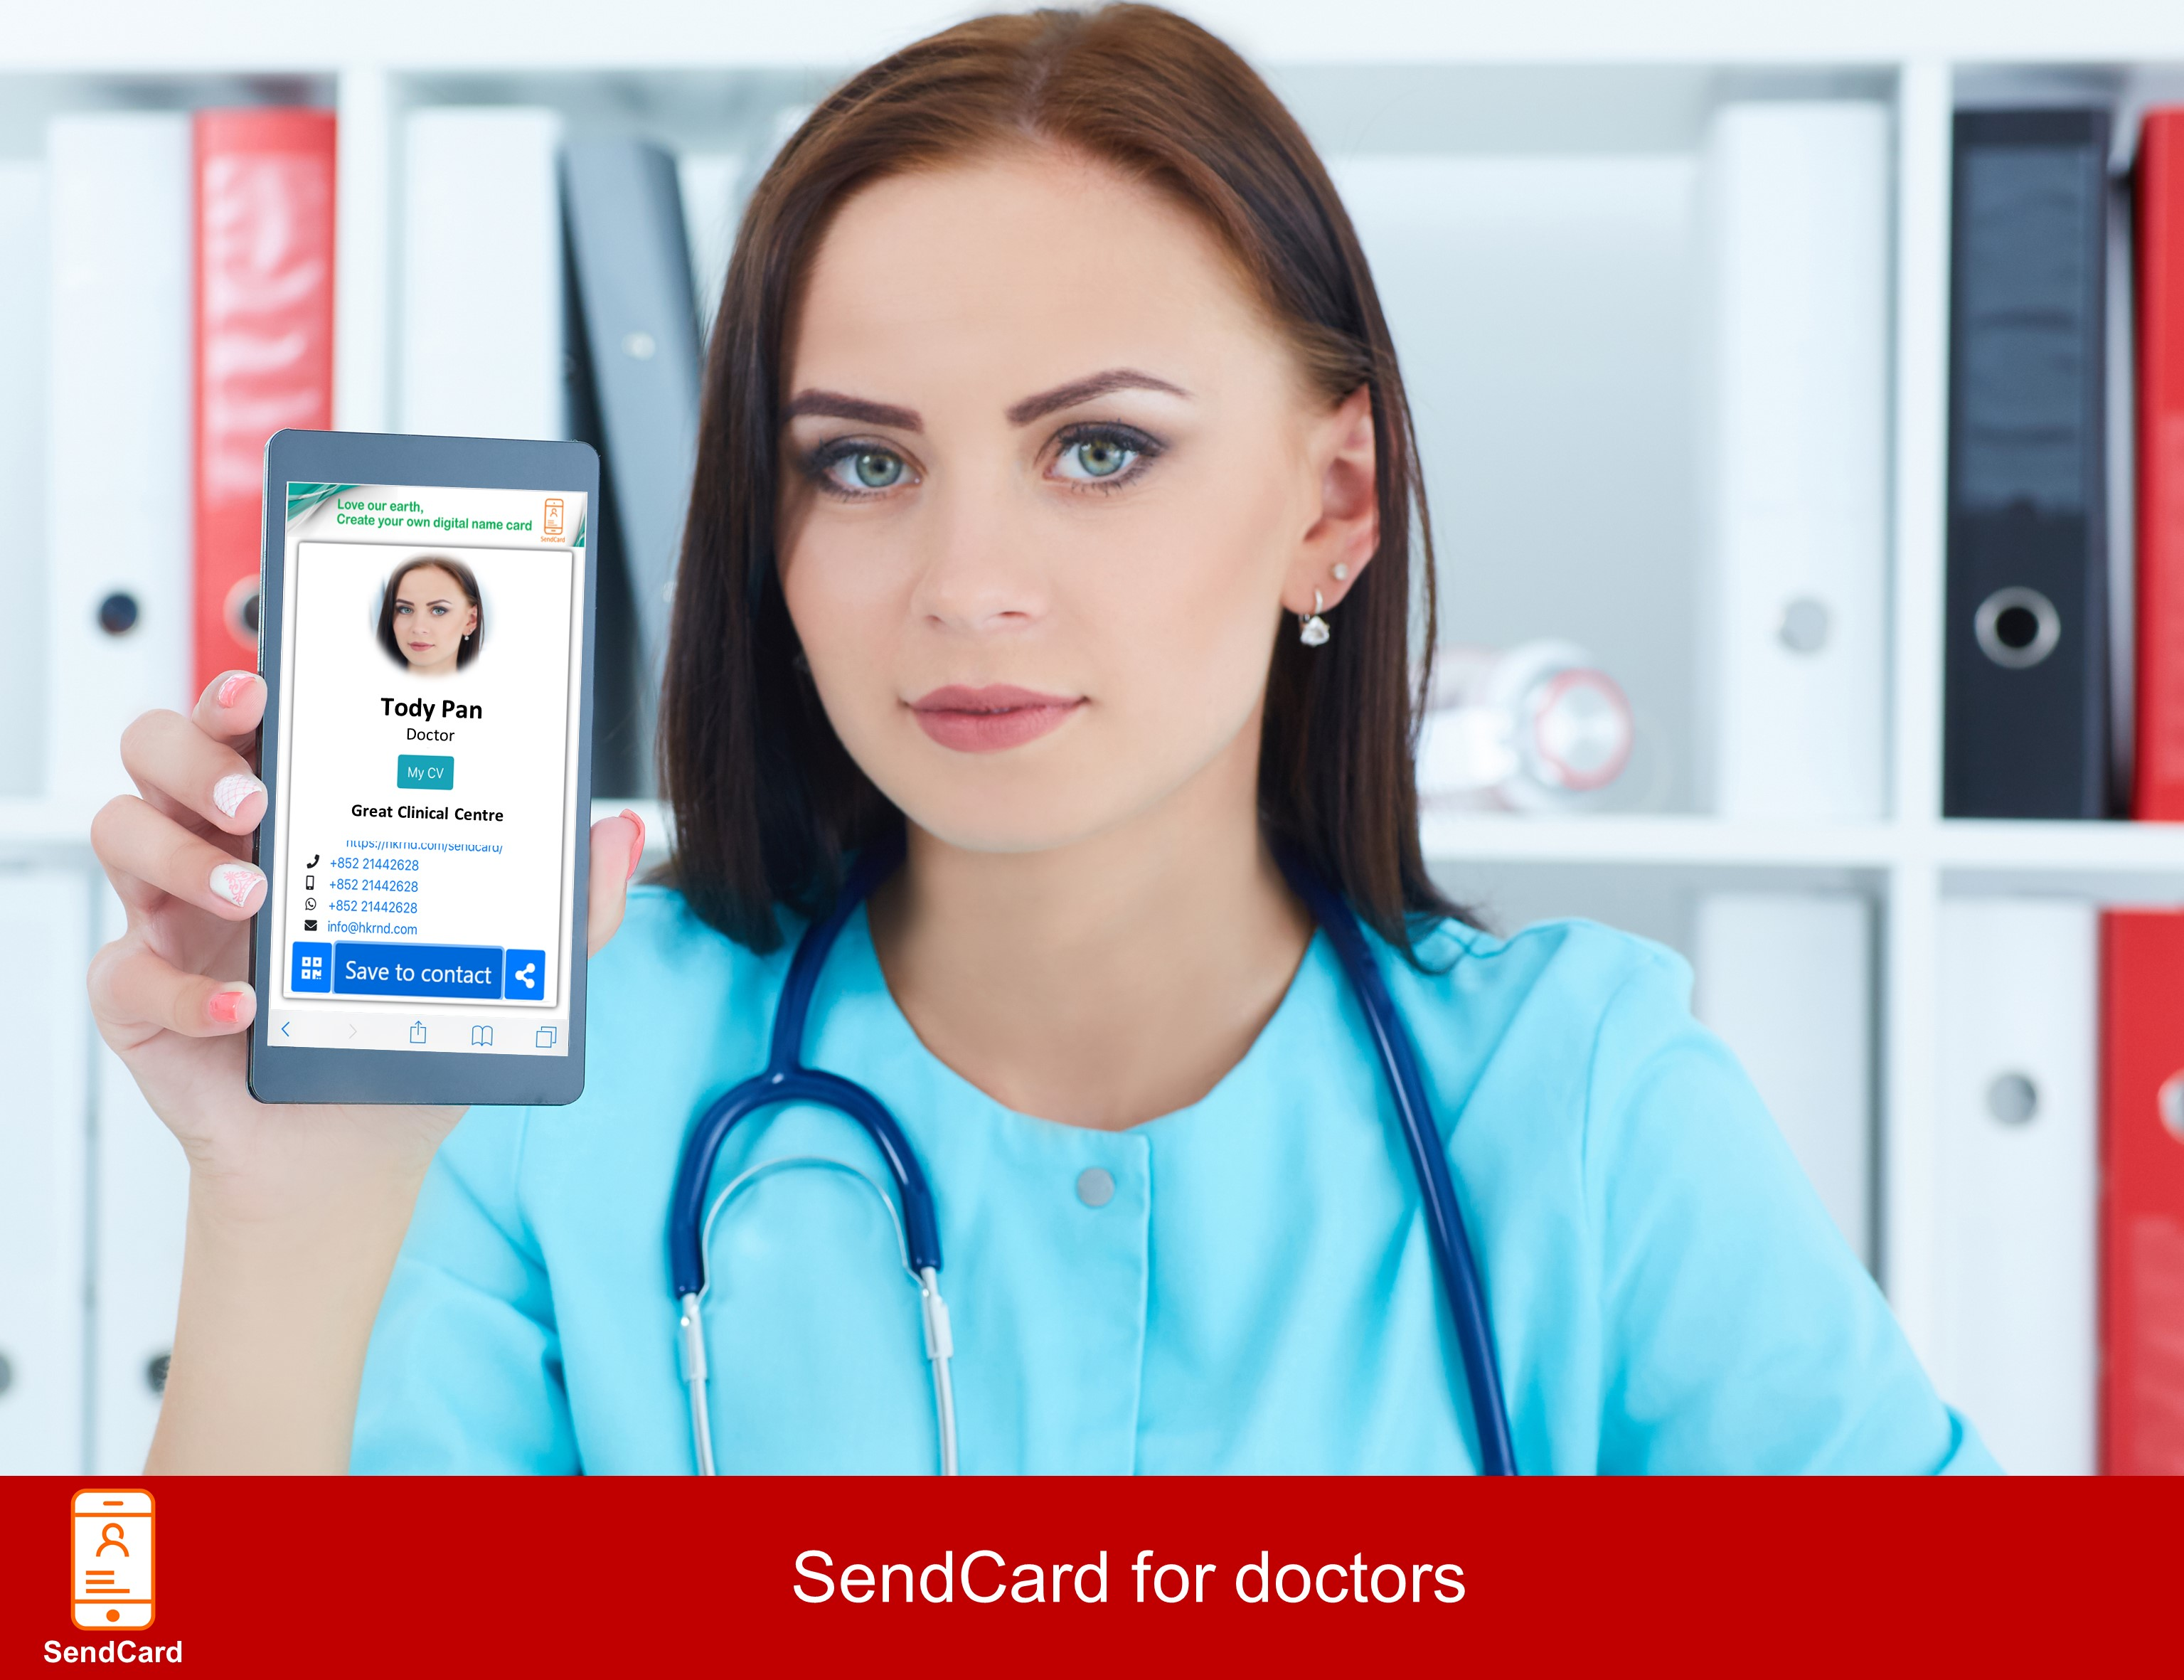 Doctor using SendCard